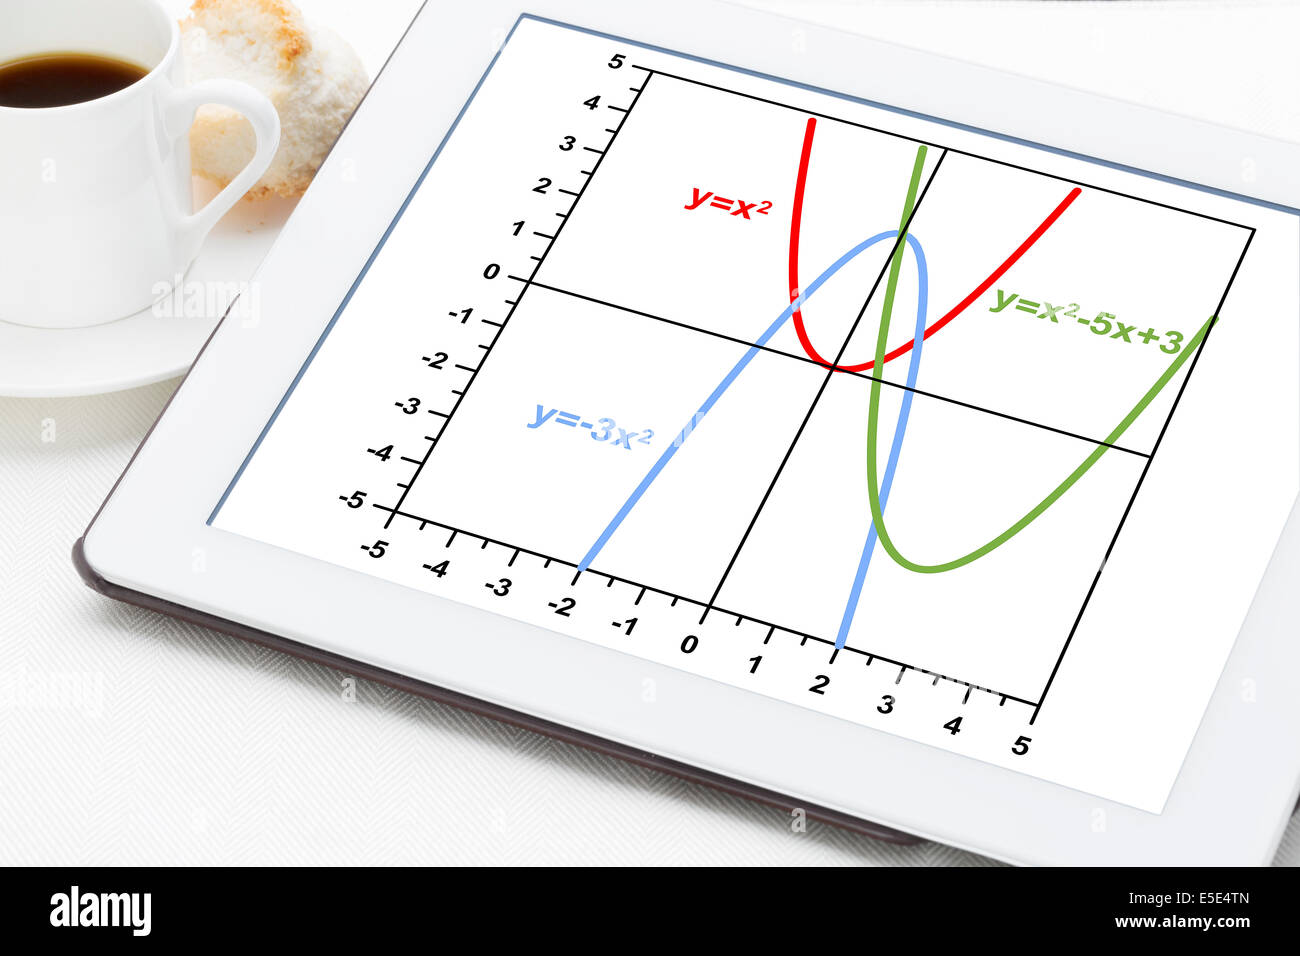 Graph Of Quadratic Functions Parabola On A Digital Tablet With Cup Stock Photo Royalty Free